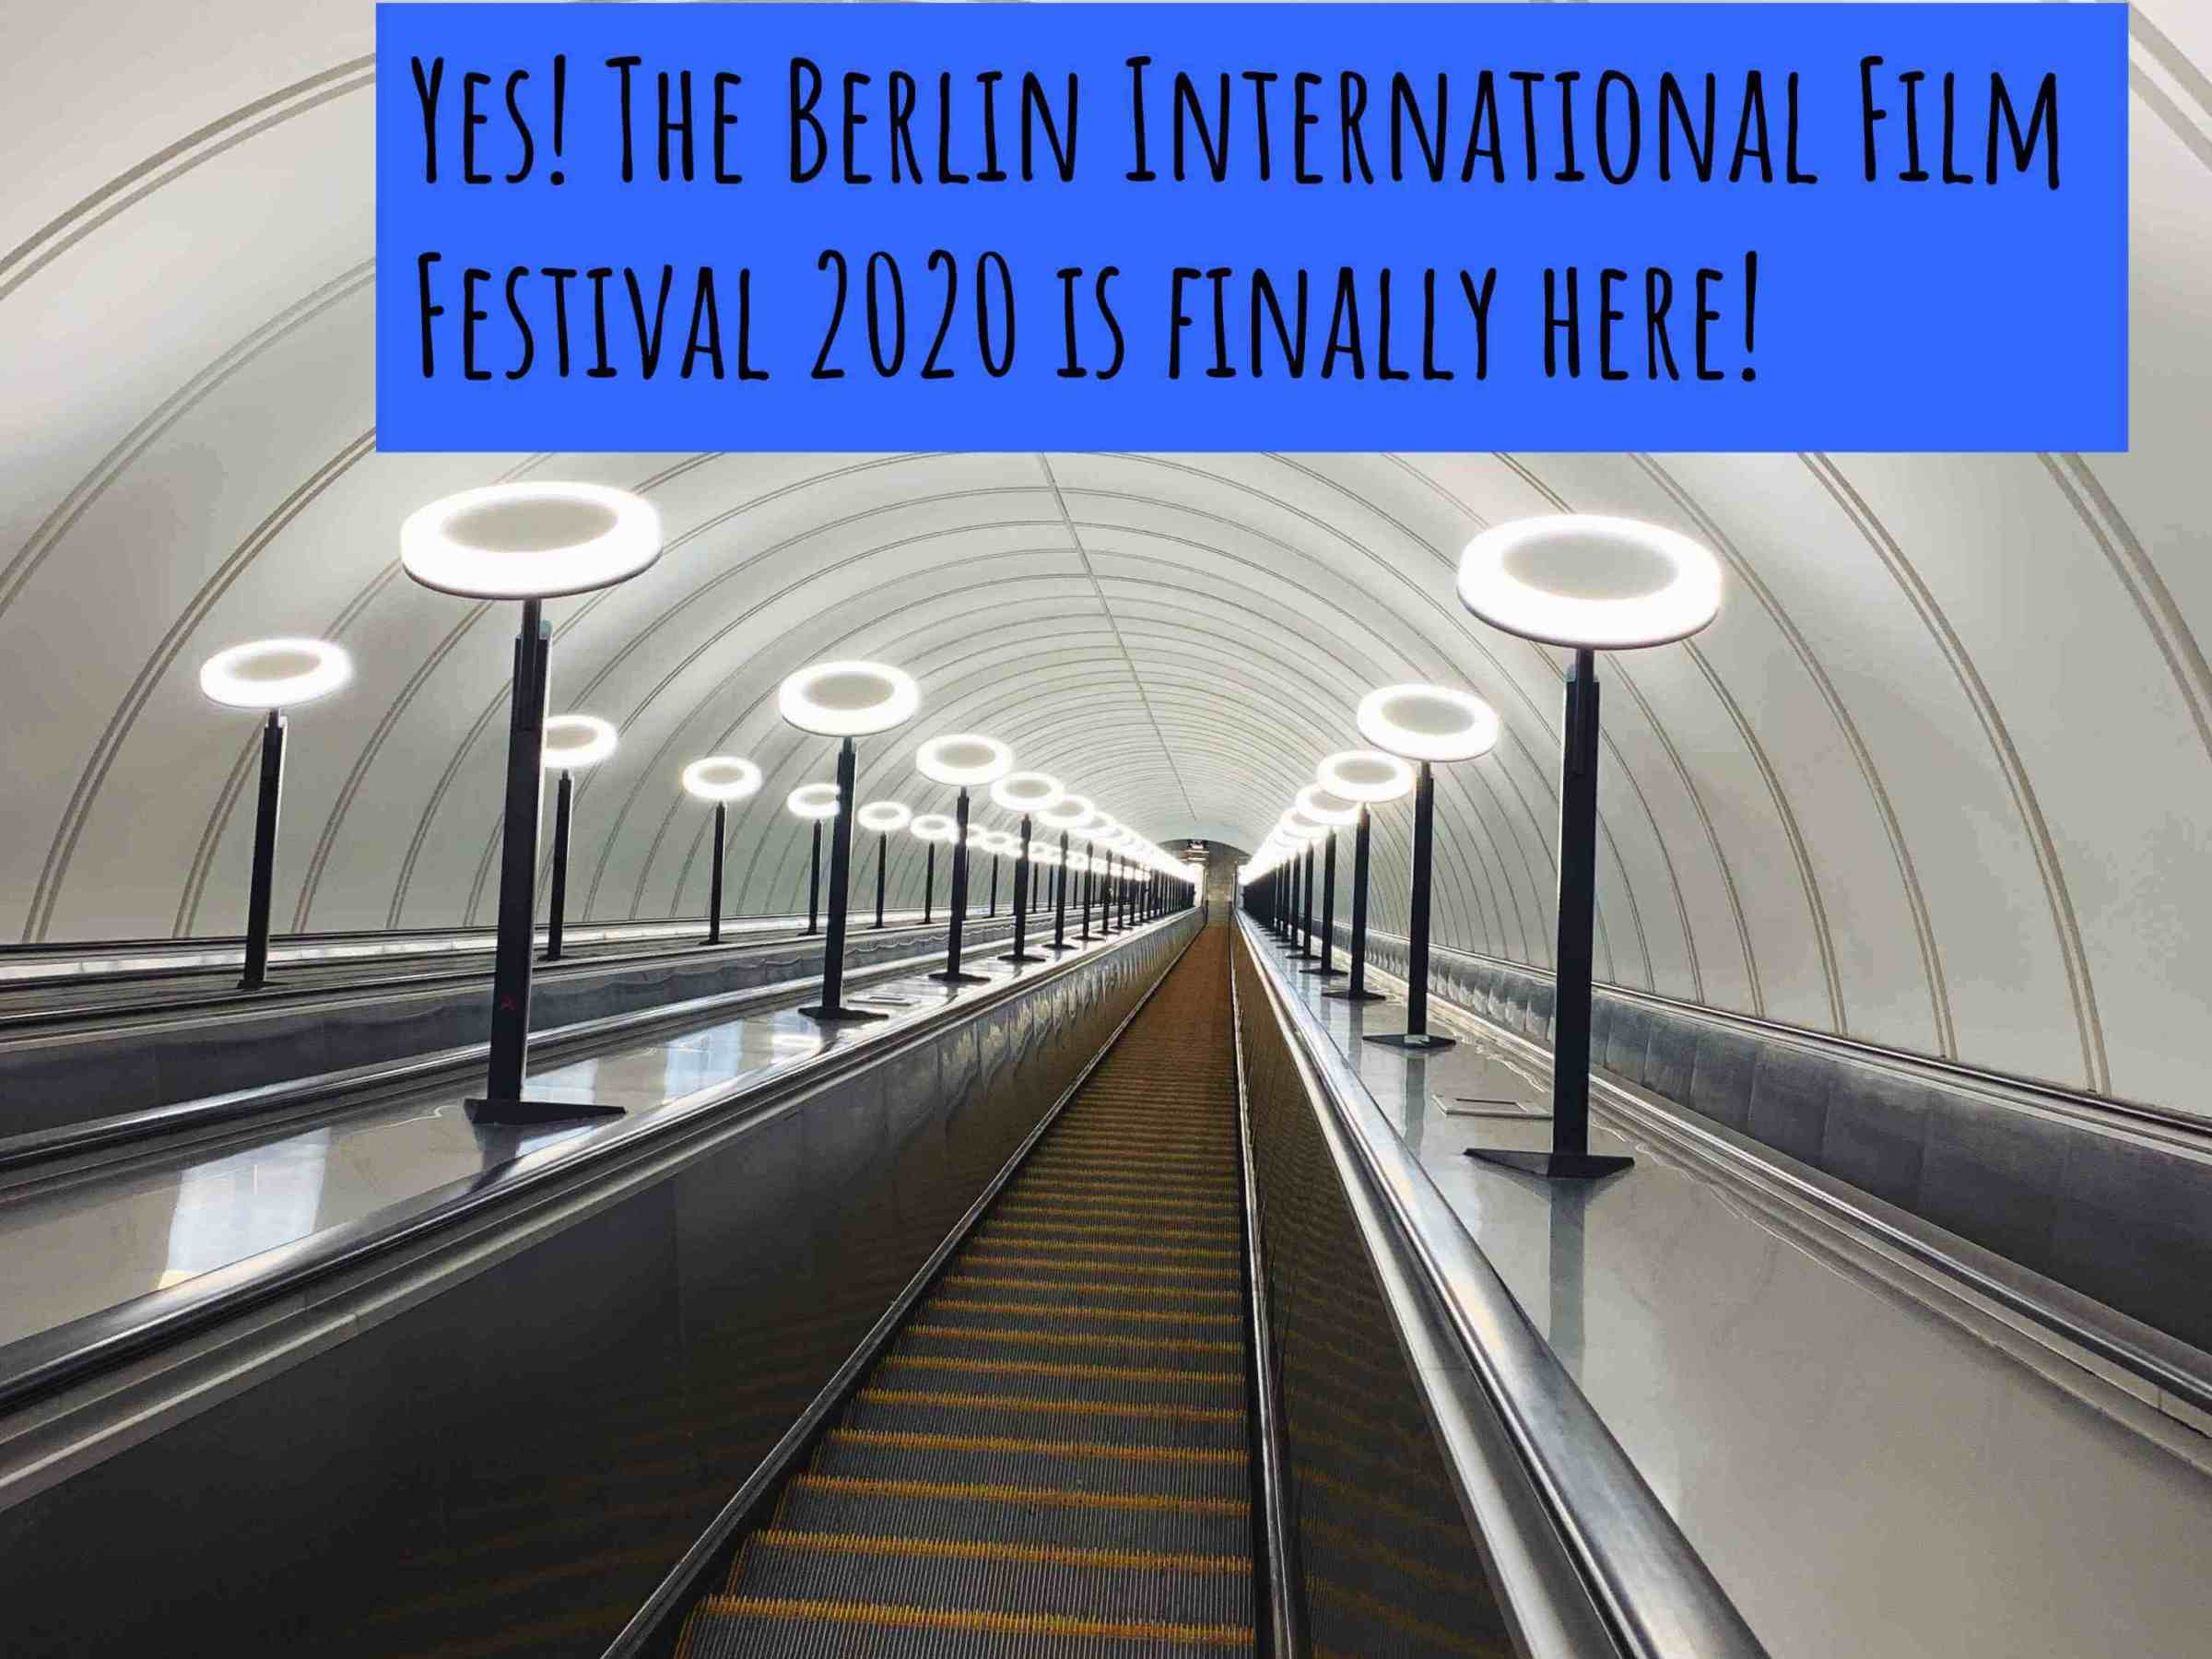 A Beginners' Guide to the 70th Berlinale. Yes! The Berlin International Film Festival 2020 is finally here!; Berlinale; 70th Berlinale; Berlin International Film Festival; Internationale Filmfestspiele Berlin; International Film Festival; Film Festival; film; films; movies; festival; Berlin Films; Berlin; Germany